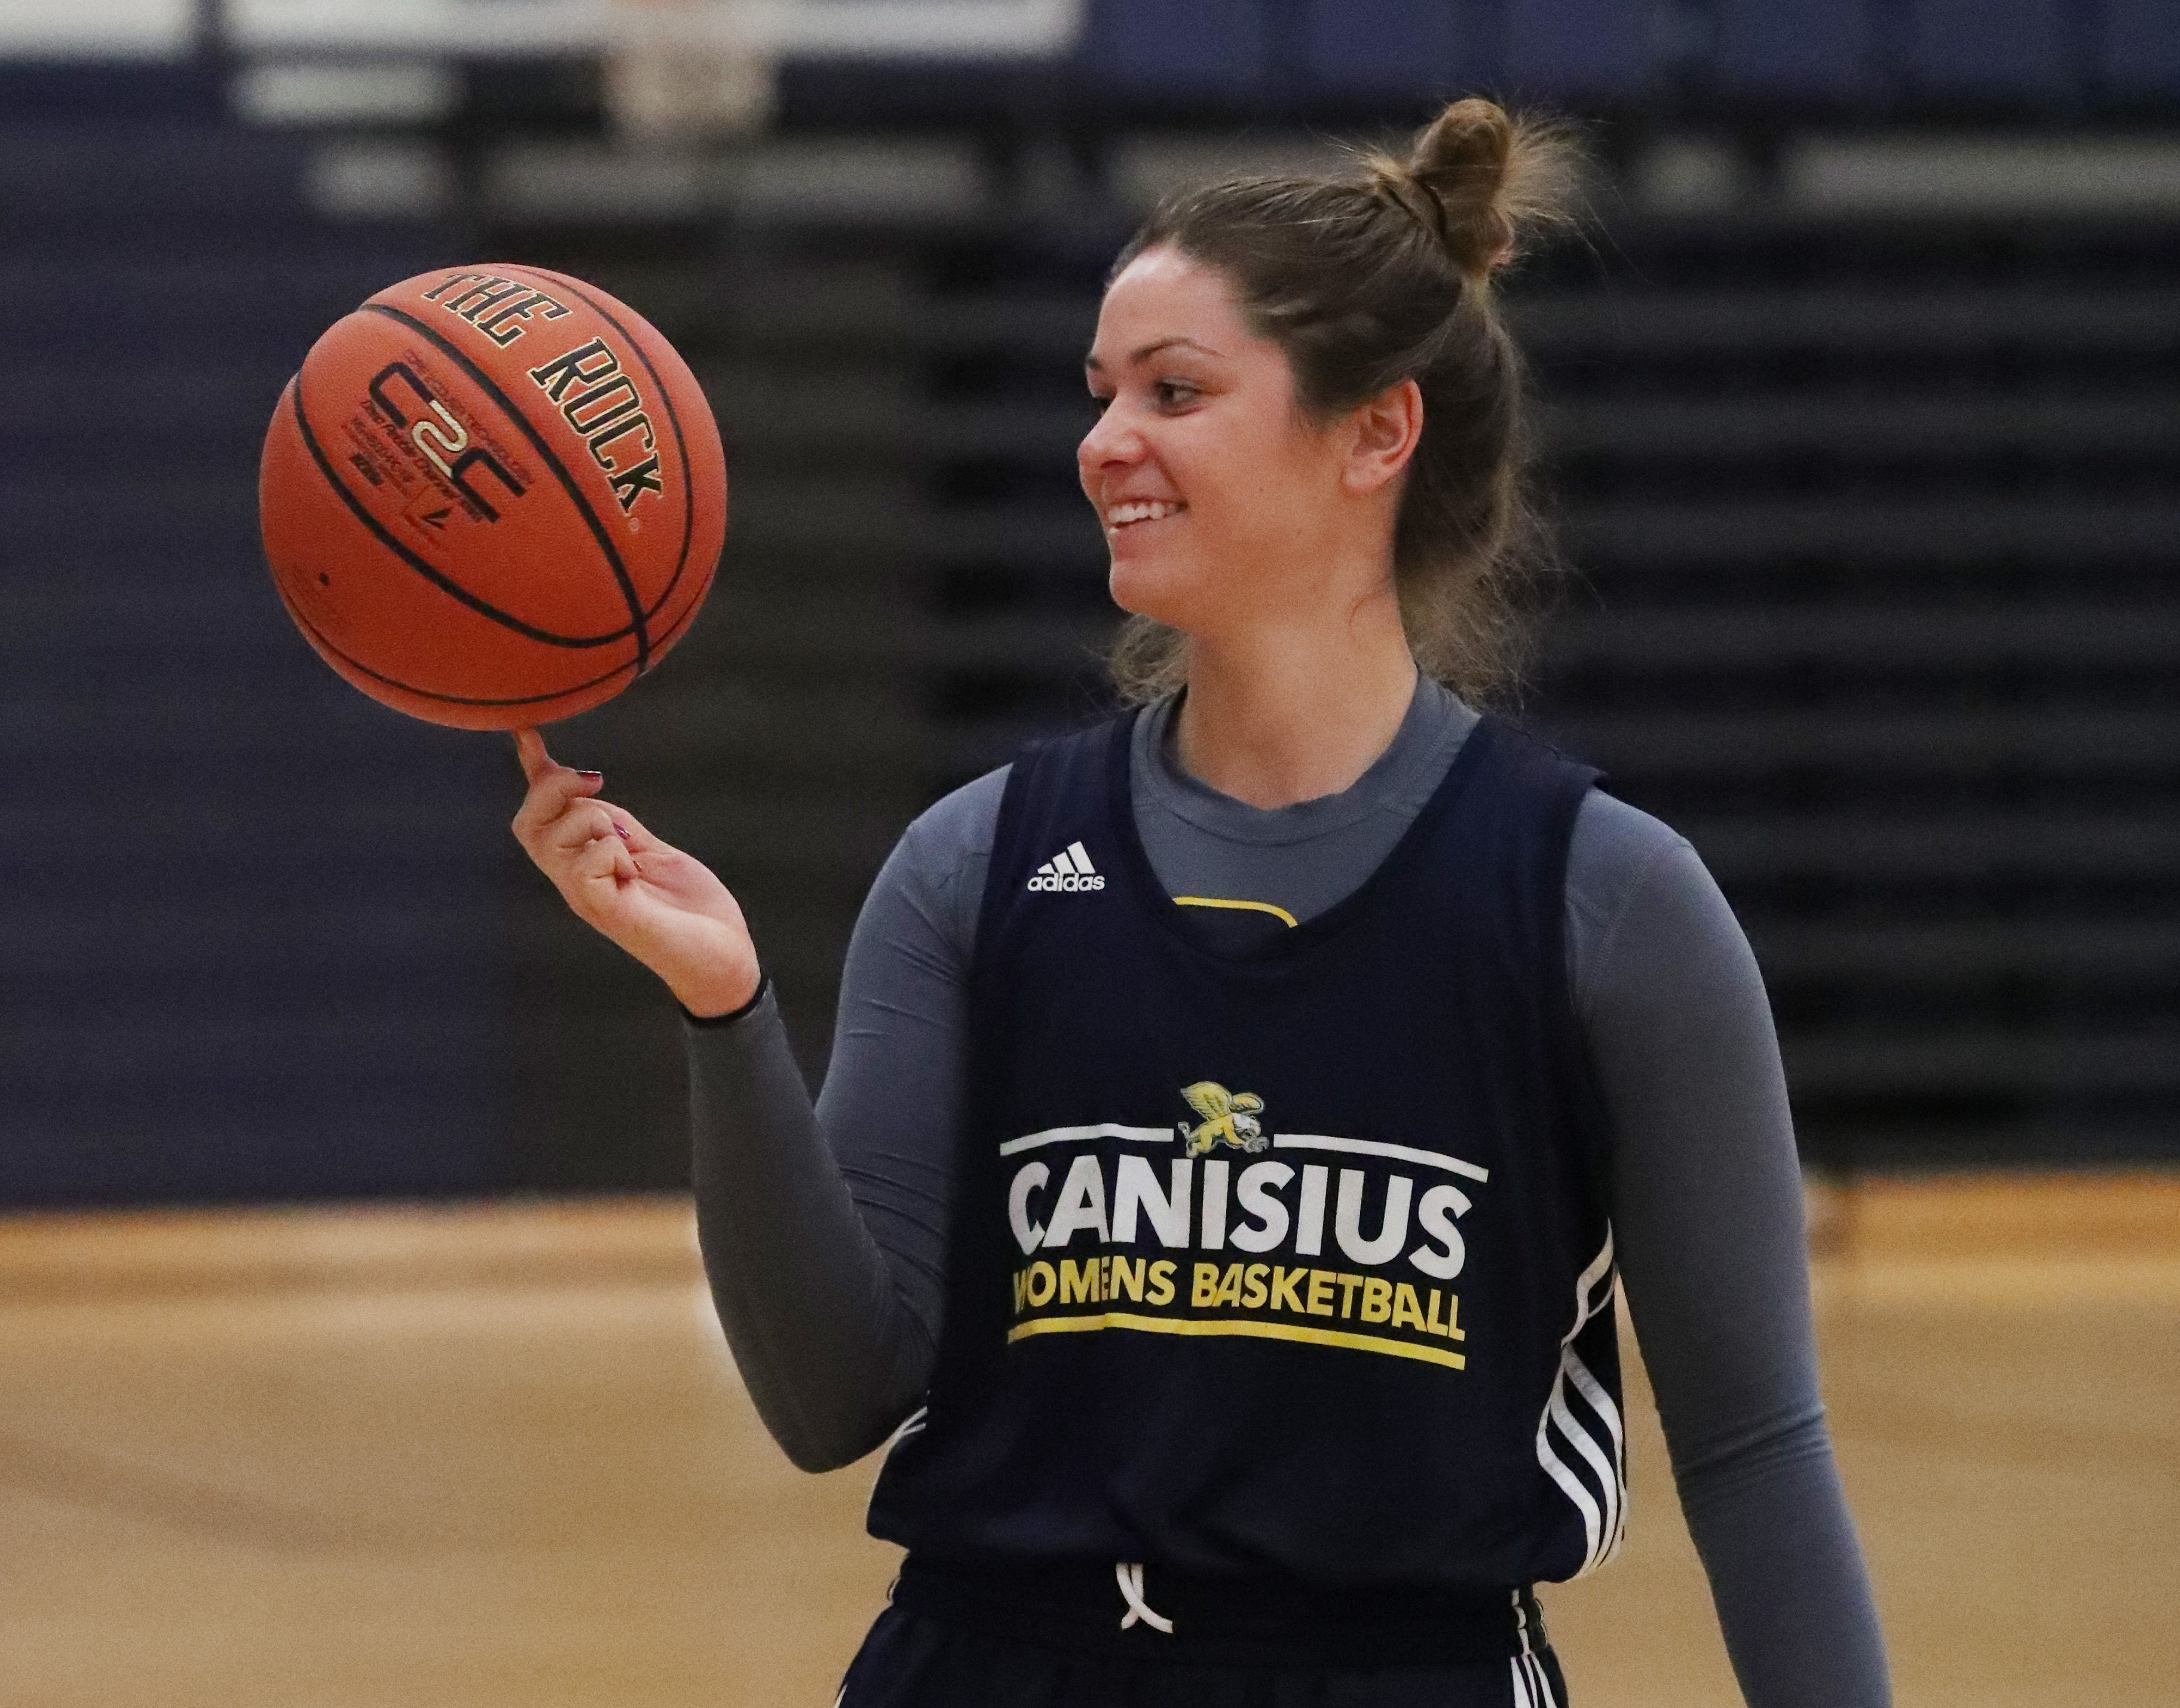 Lauren D'Hont is primed for a big year for Canisius. (James P. McCoy/Buffalo News)